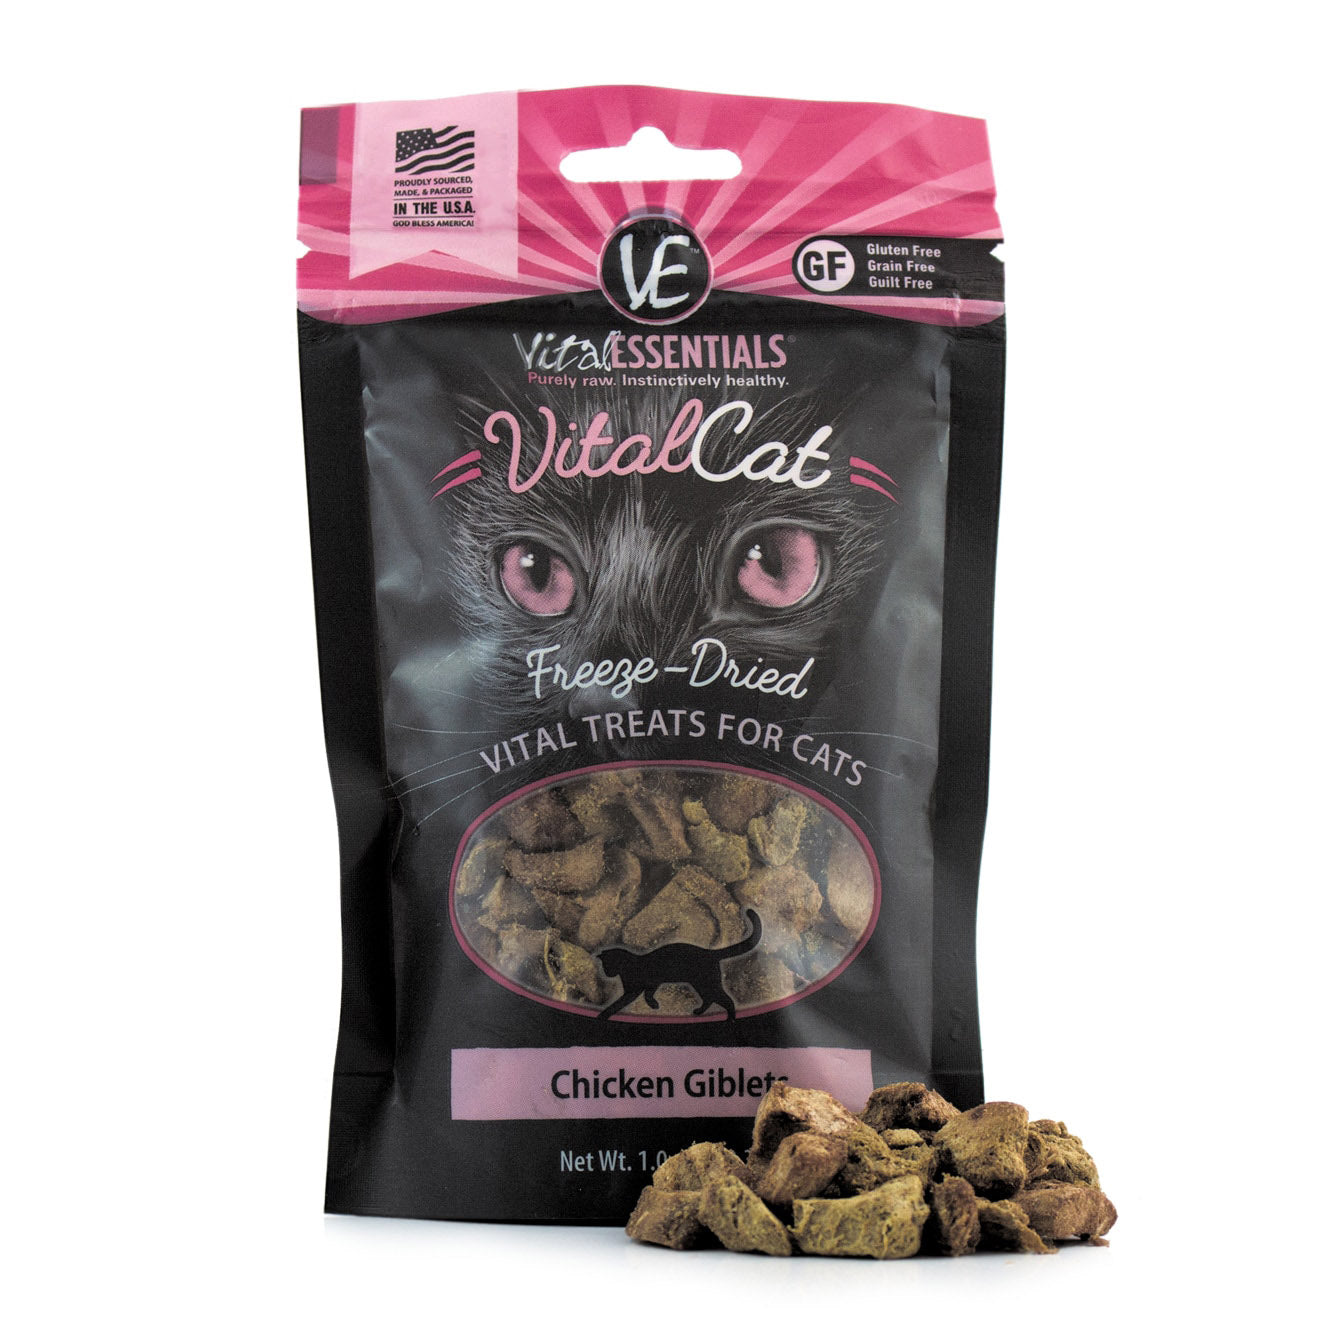 Freeze-Dried Chicken Giblets Cat Treats